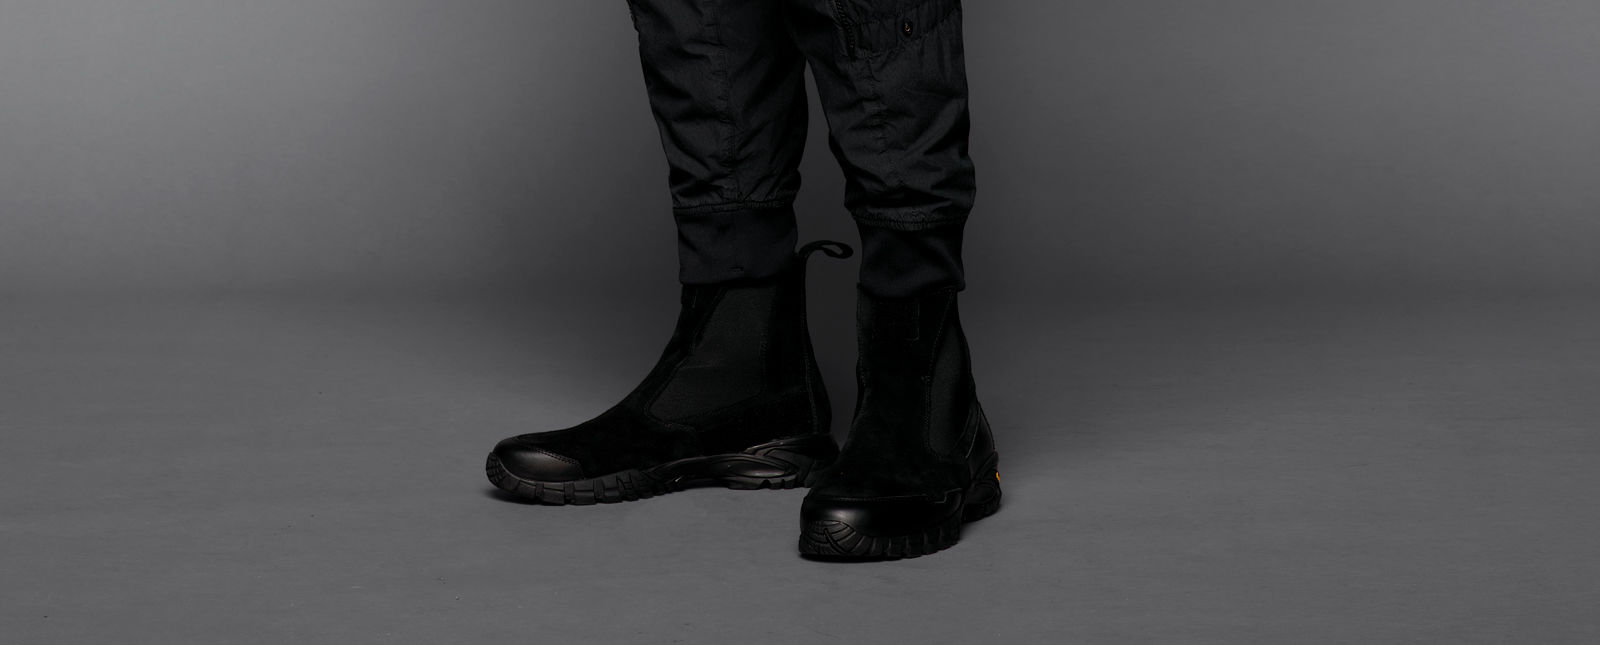 Close-up of black, Chelsea-style elasticated ankle boots with chunky, textured soles and pull tabs on a model wearing black pants